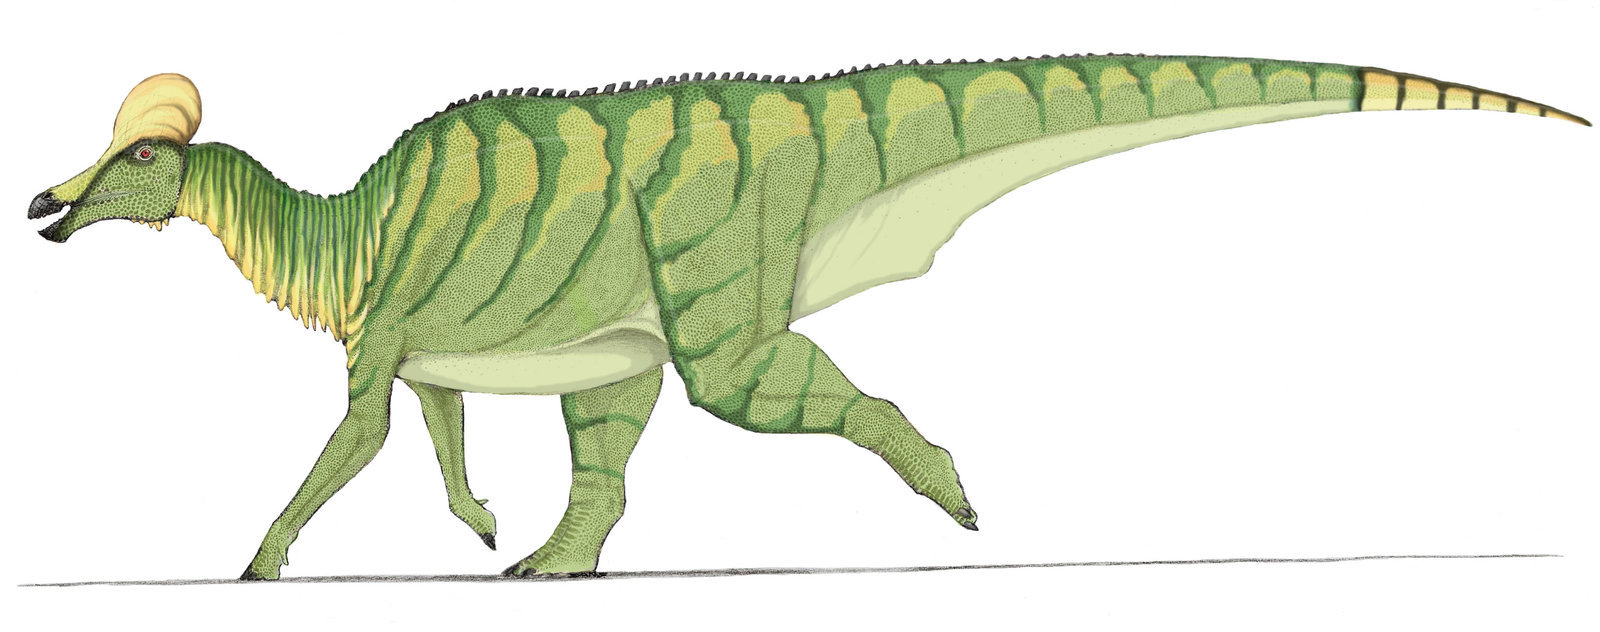 Corythosaurus in color by Ahrkeath on DeviantArt